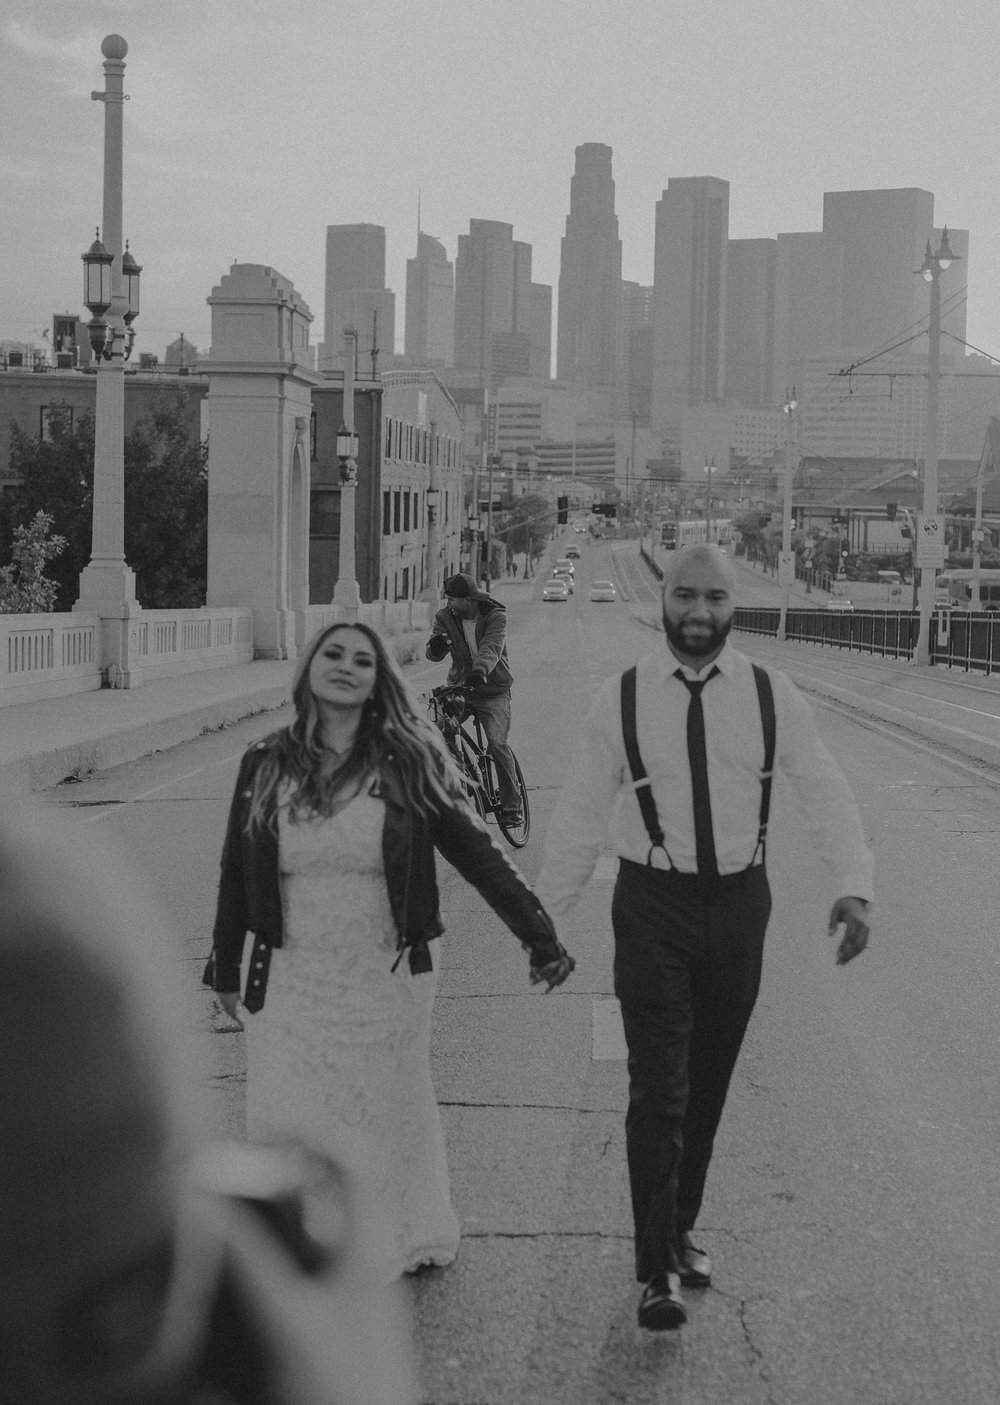 Isaiah + Taylor Photography - Los Angeles Wedding Photographer - DTLA Arts District  Engagement Session  068.jpg